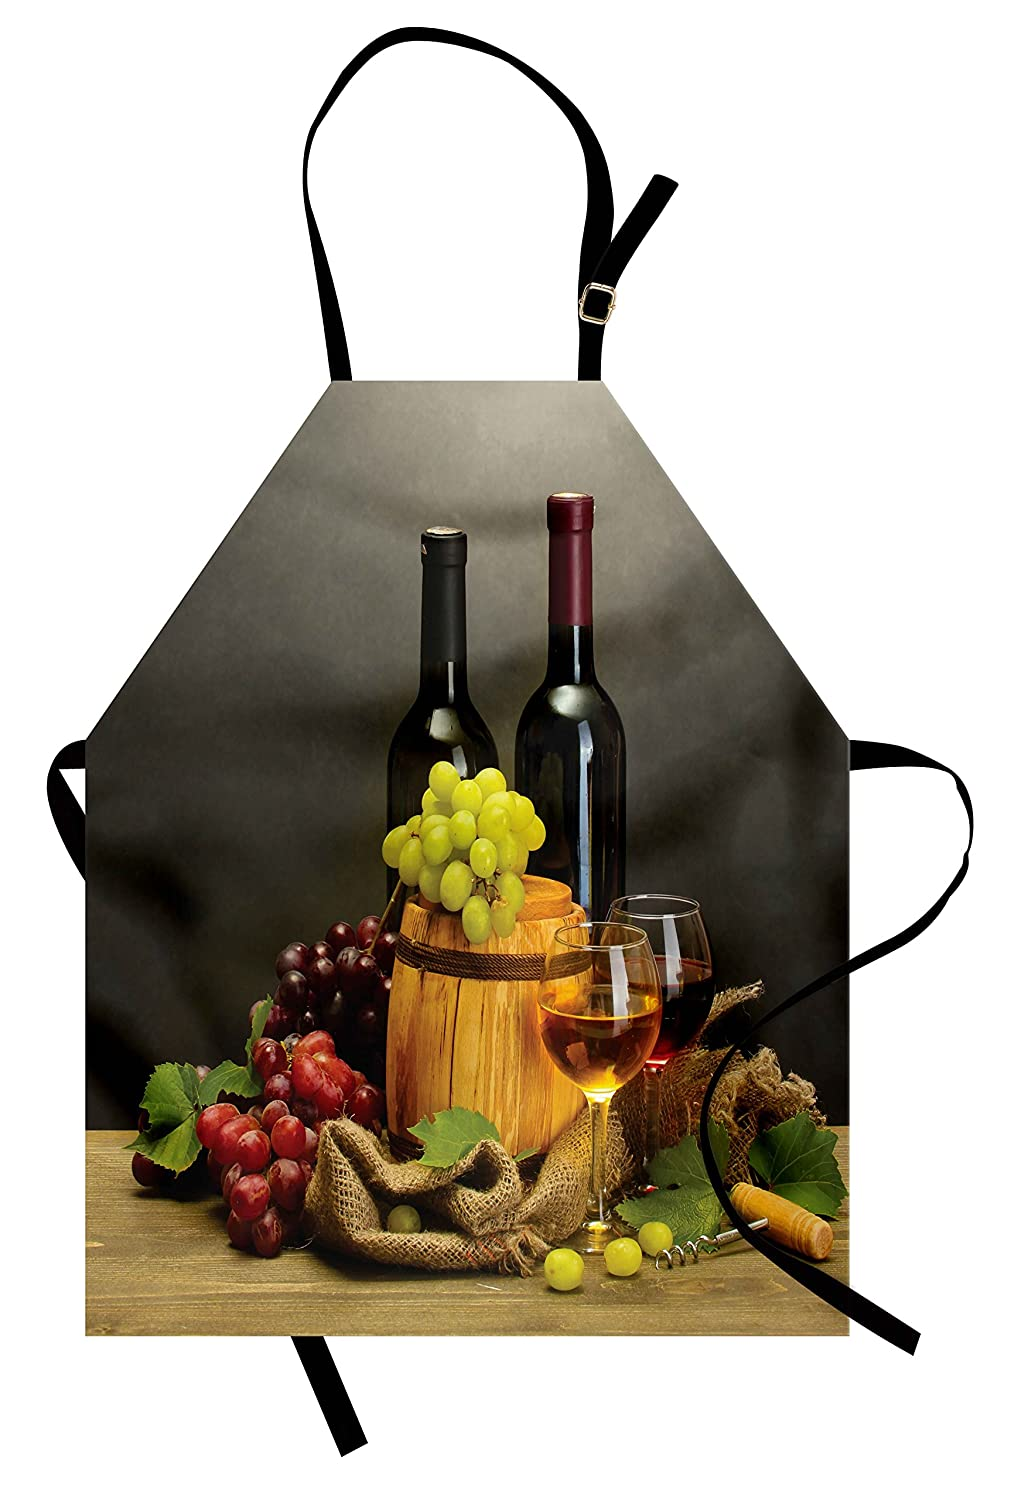 Ambesonne Winery Apron, Barrel Bottles and Glasses of Wine and Ripe Grapes on Wooden Table Picture Print, Unisex Kitchen Bib Apron with Adjustable Neck for Cooking Baking Gardening, Multicolor